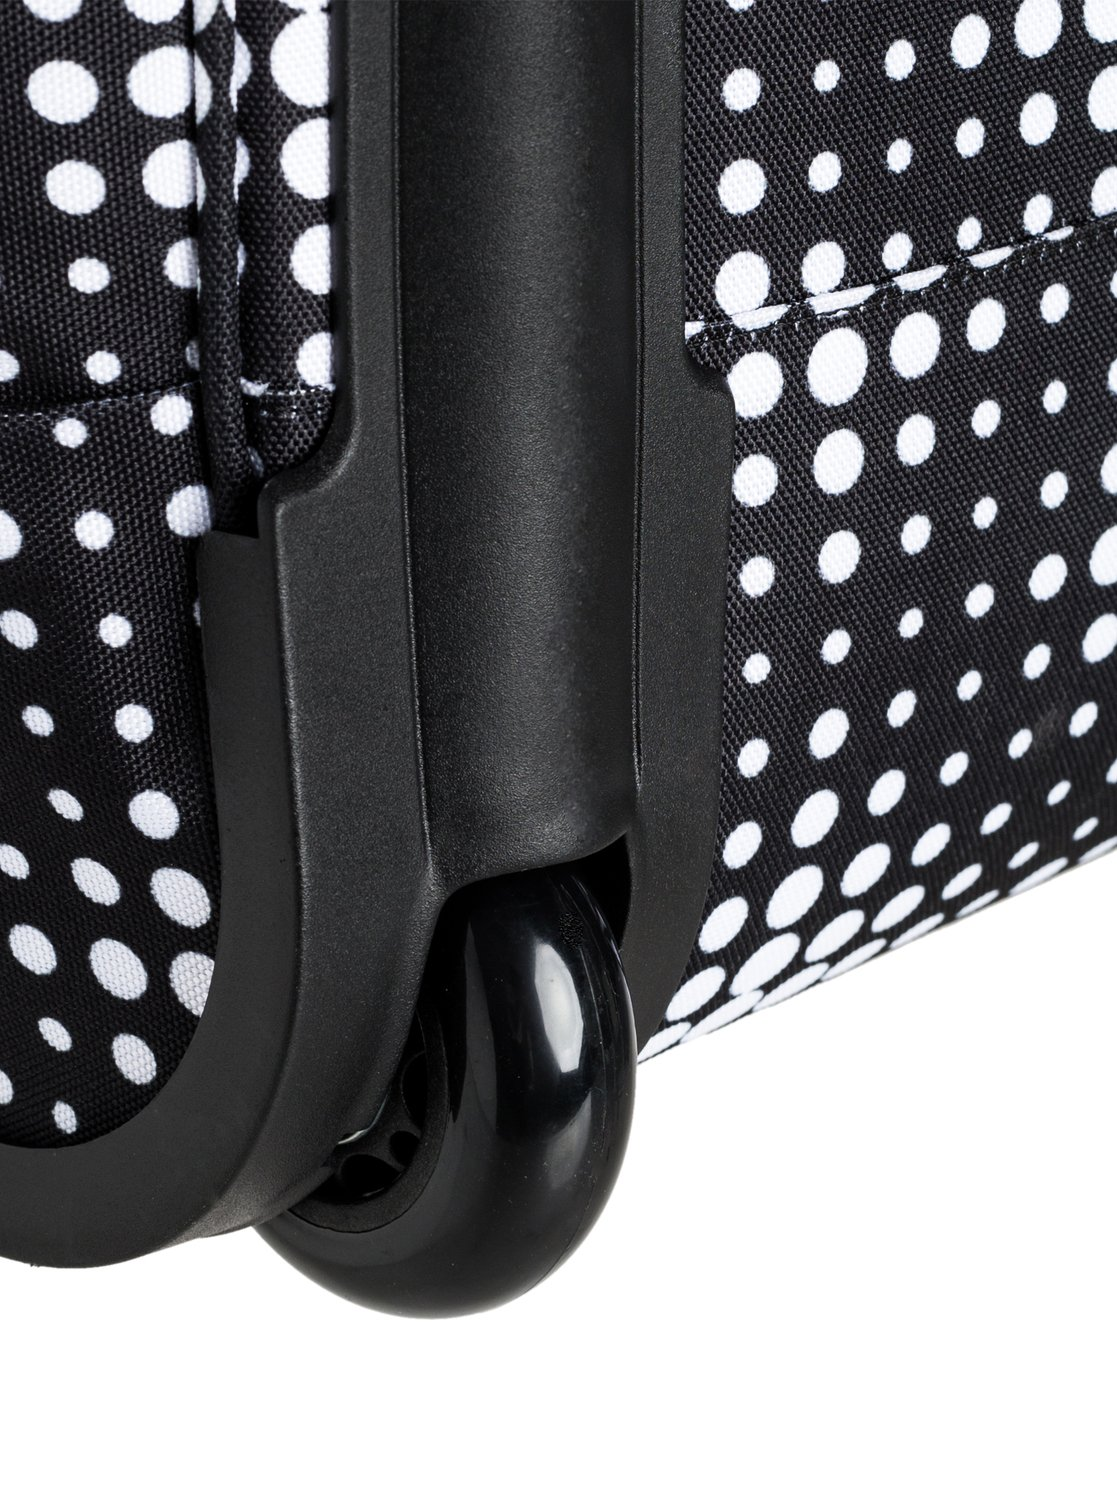 3 of 5 Roxy™ Distance Across - Large Wheeled Duffle Bag - Women - ONE SIZE  - Black 4 of 5 See More c6220a058f1b9